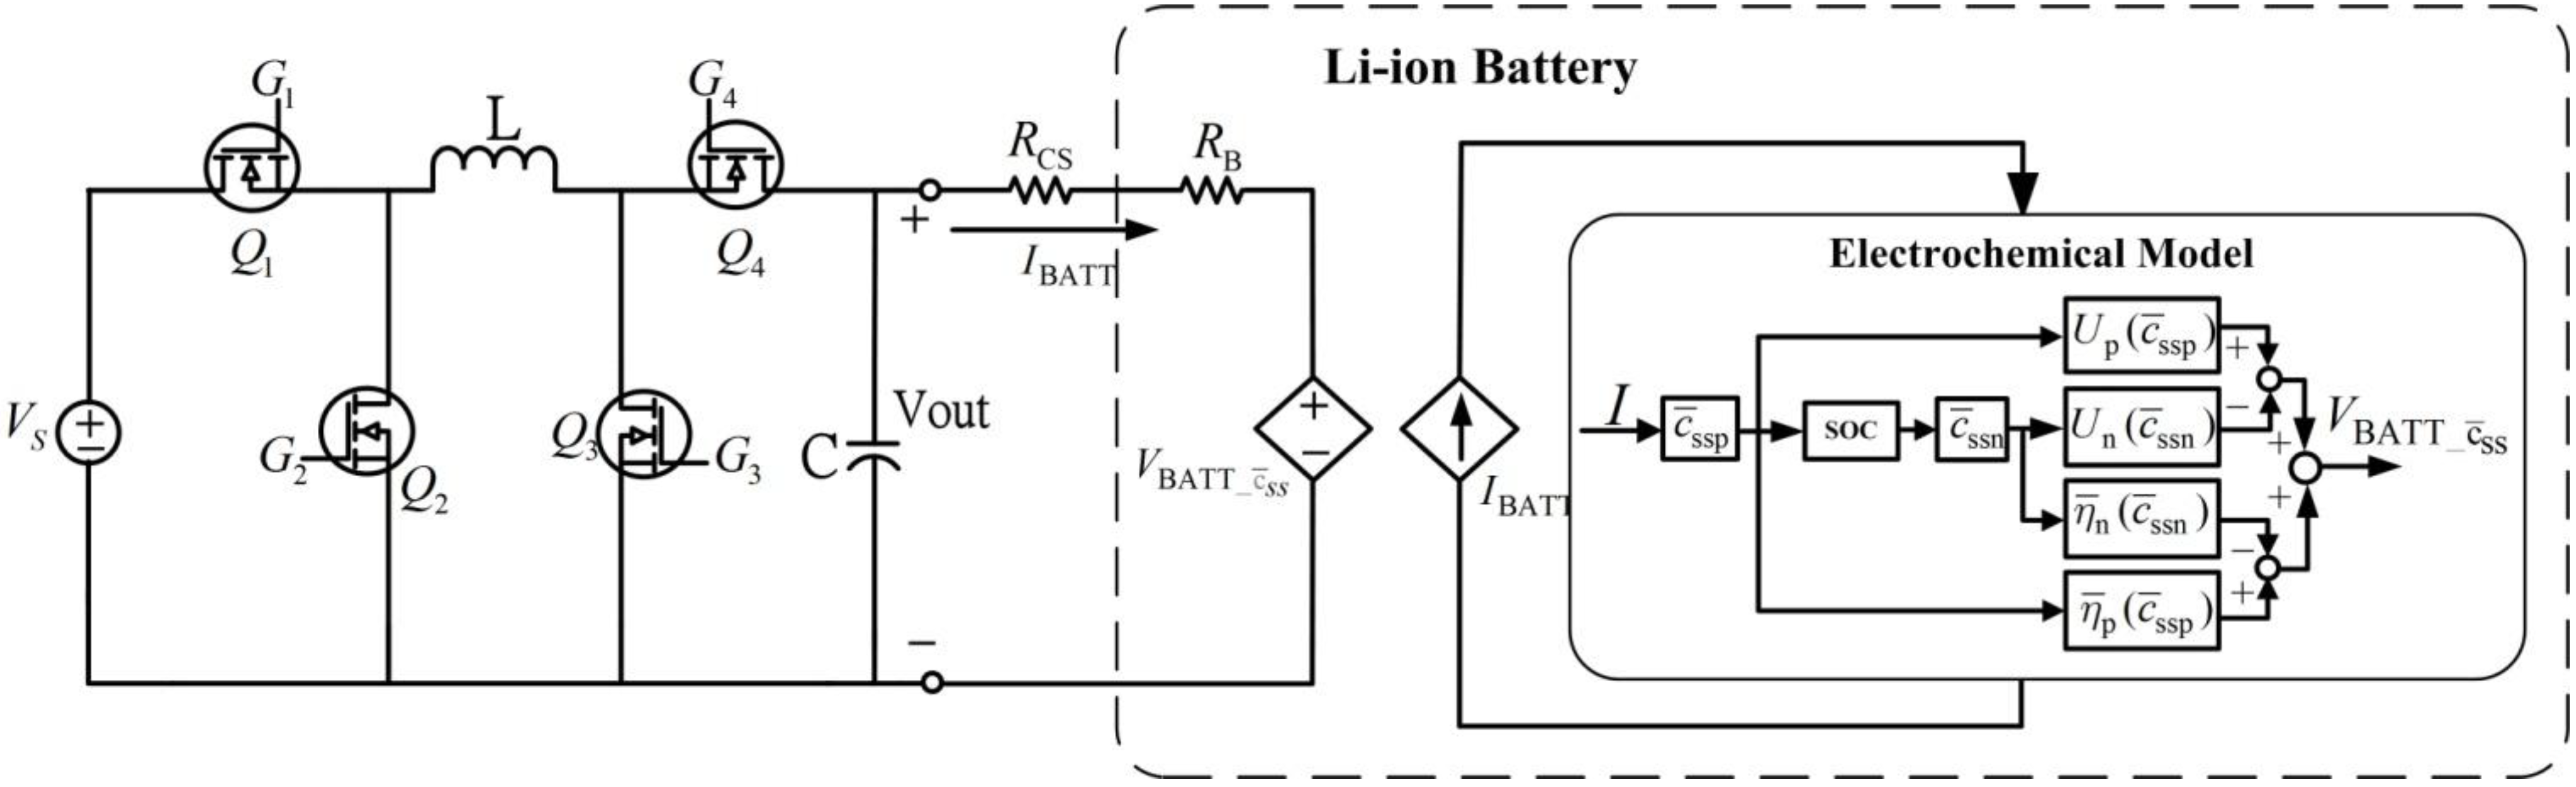 Energies Free Full Text Li Ion Battery Charging With A Buck Solar Panel Circuit Diagram No